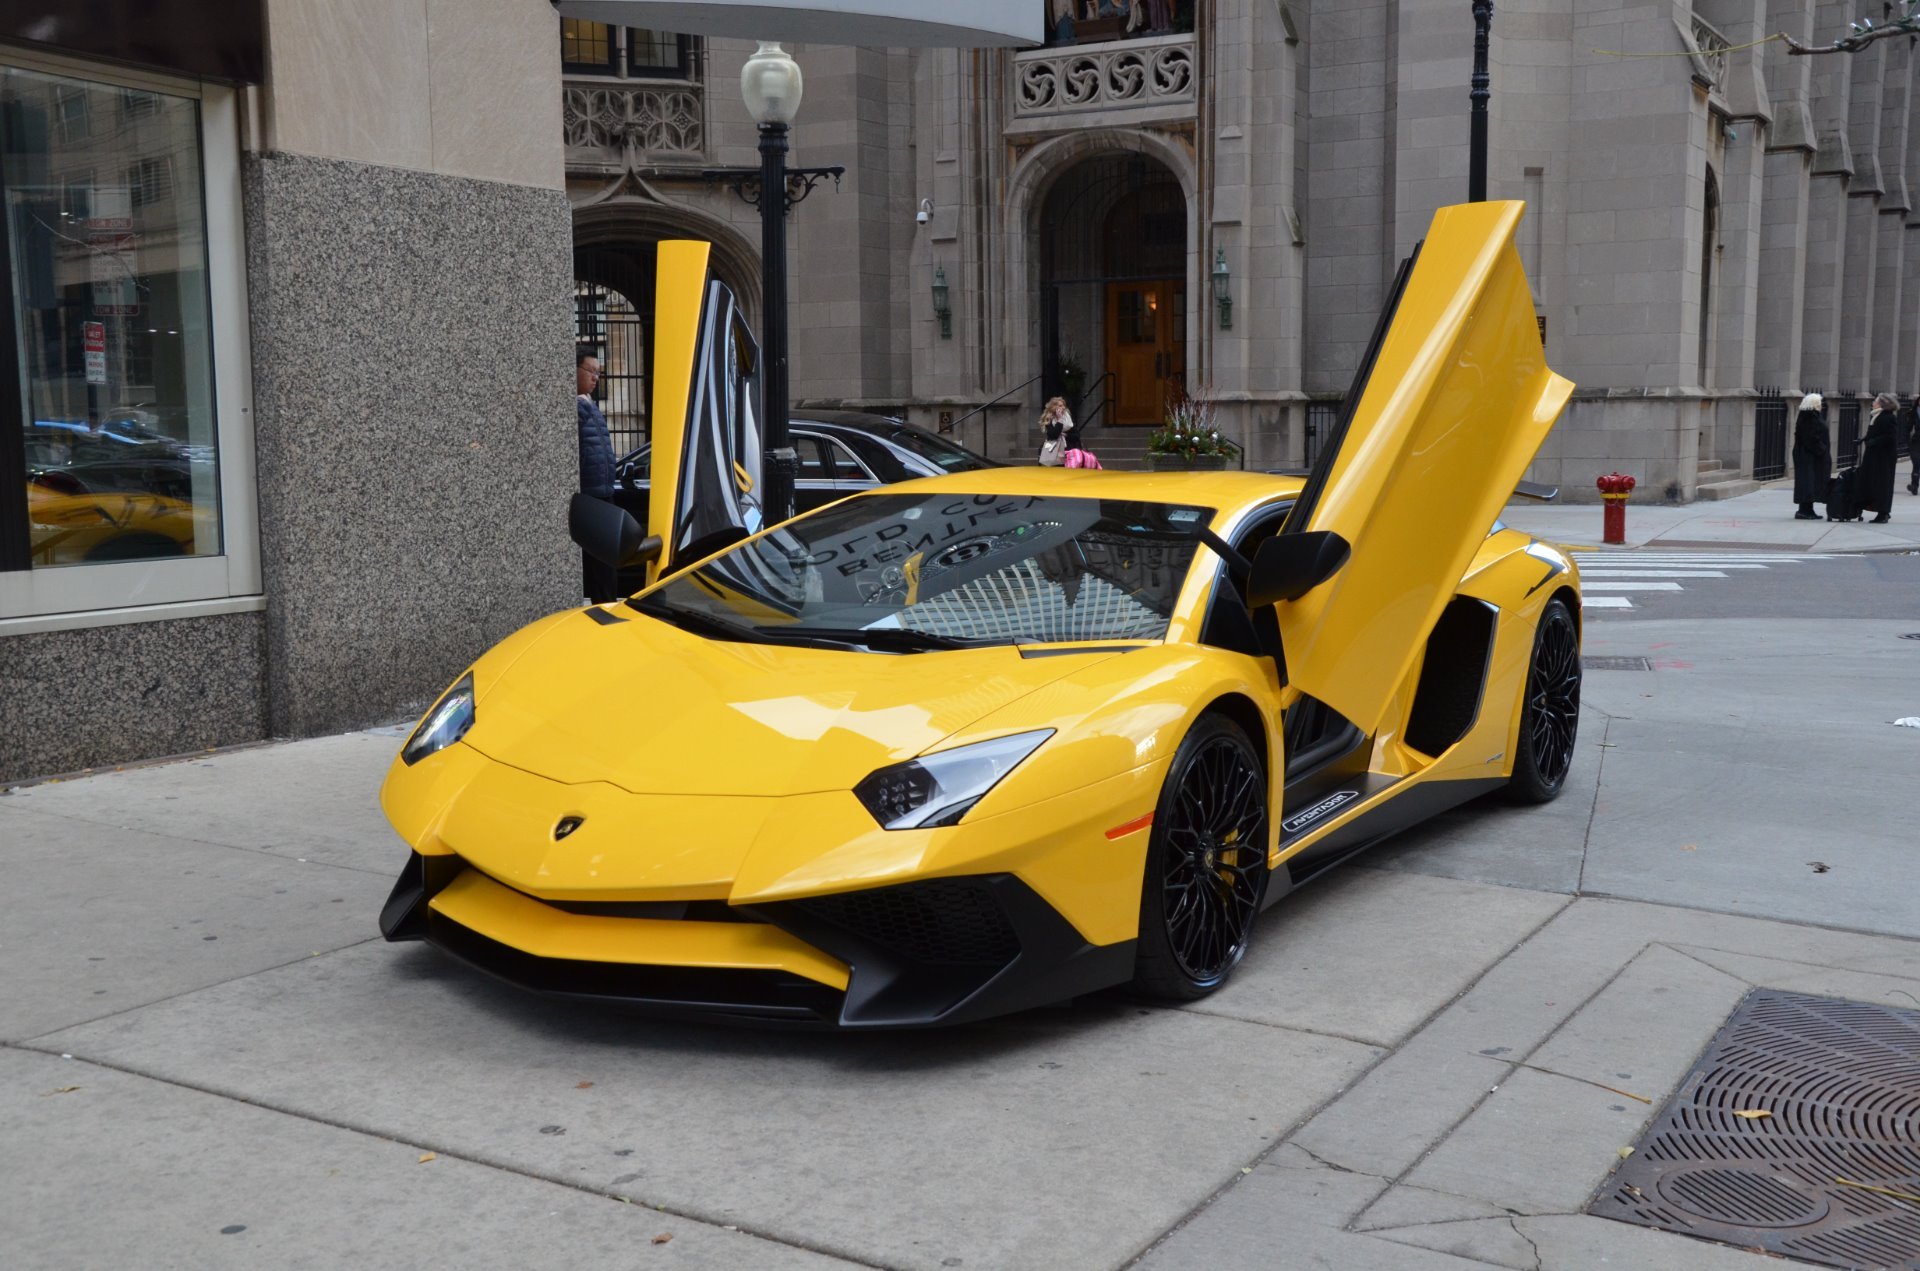 2017 lamborghini aventador sv lp 750 4 sv stock gc2258a for sale near chicago il il. Black Bedroom Furniture Sets. Home Design Ideas